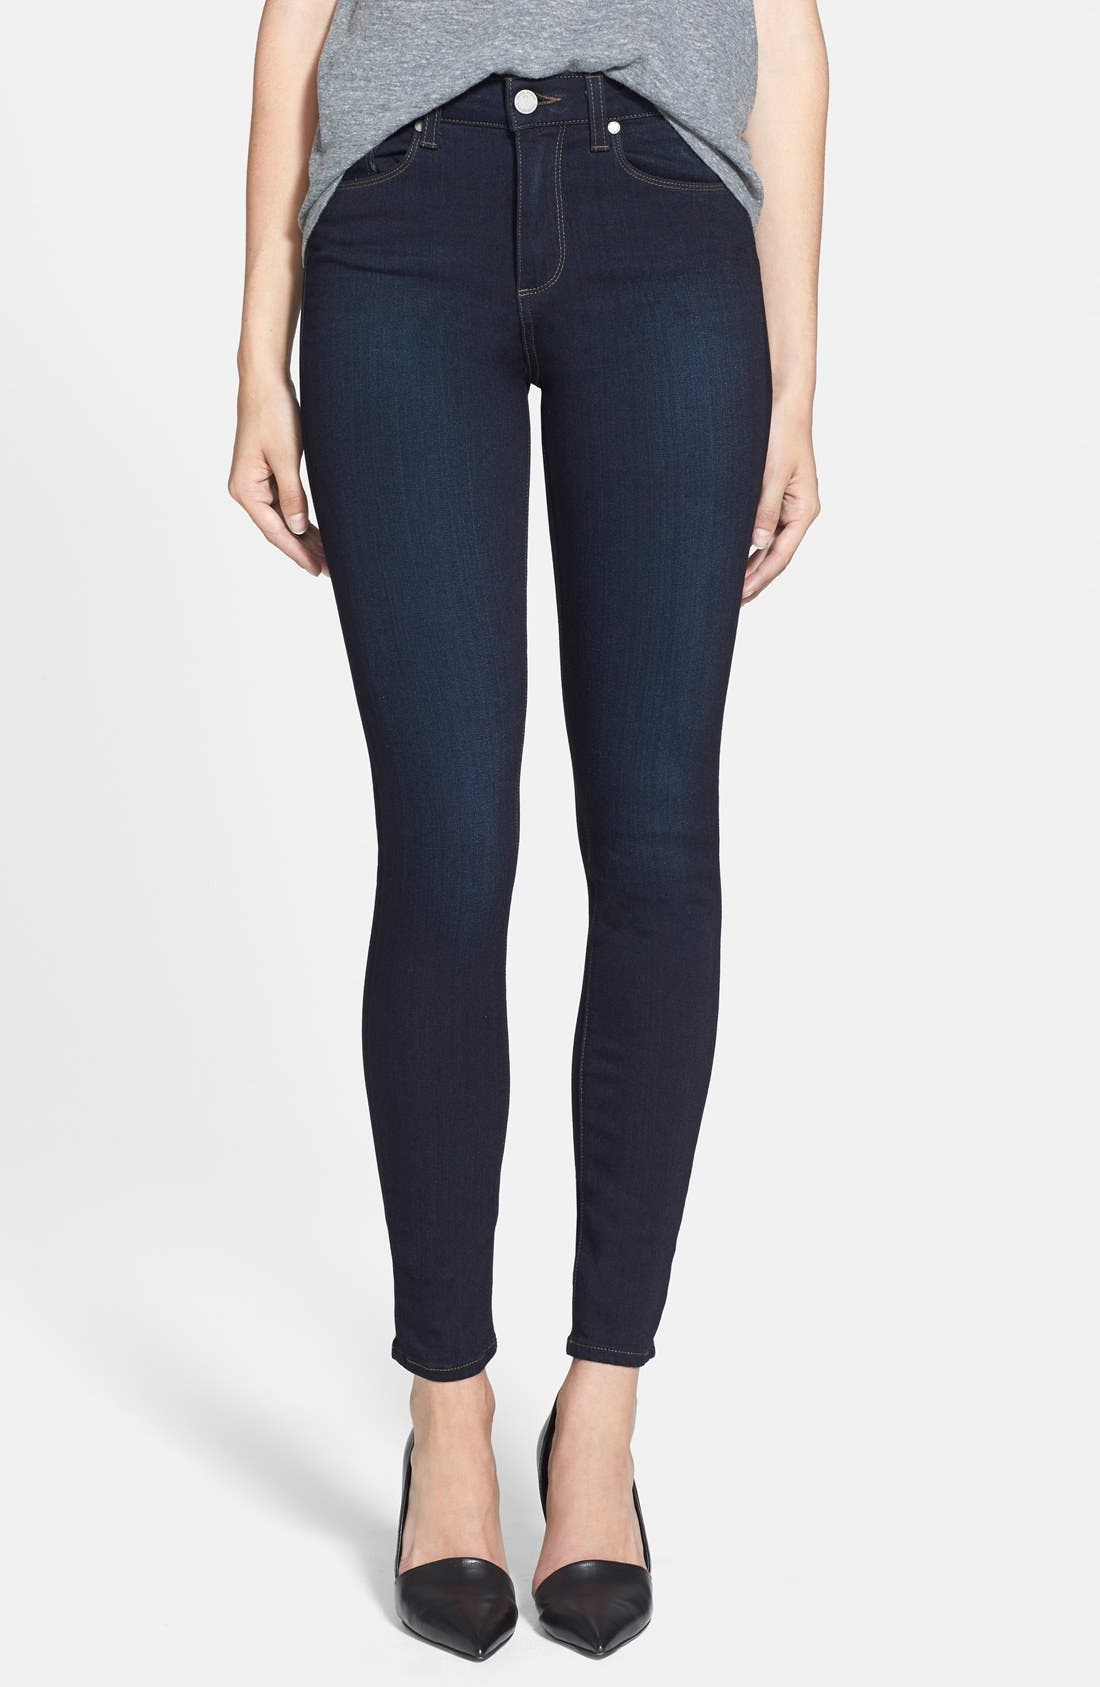 Women's Paige Transcend - Hoxton High Waist Ultra Skinny Jeans